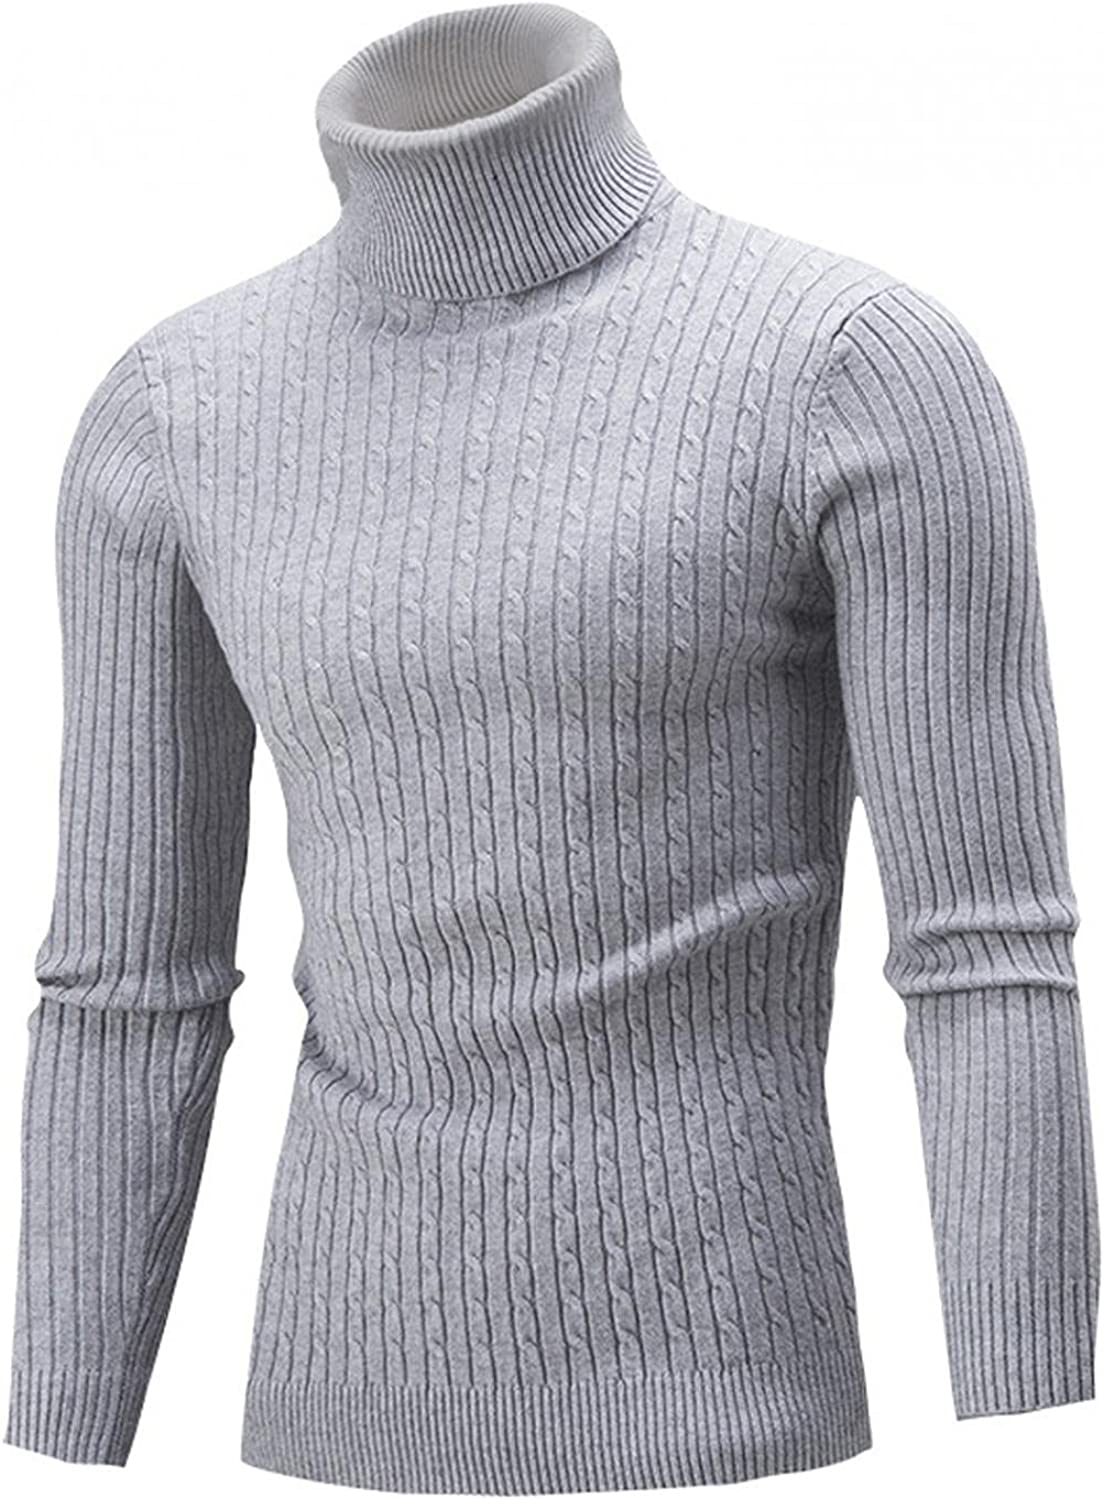 KEEYO Mens Casual Slim Fit Turtleneck Pullover Sweaters Long Sleeve Knit Tops Winter Warm Twisted Knitted Thermal Tops